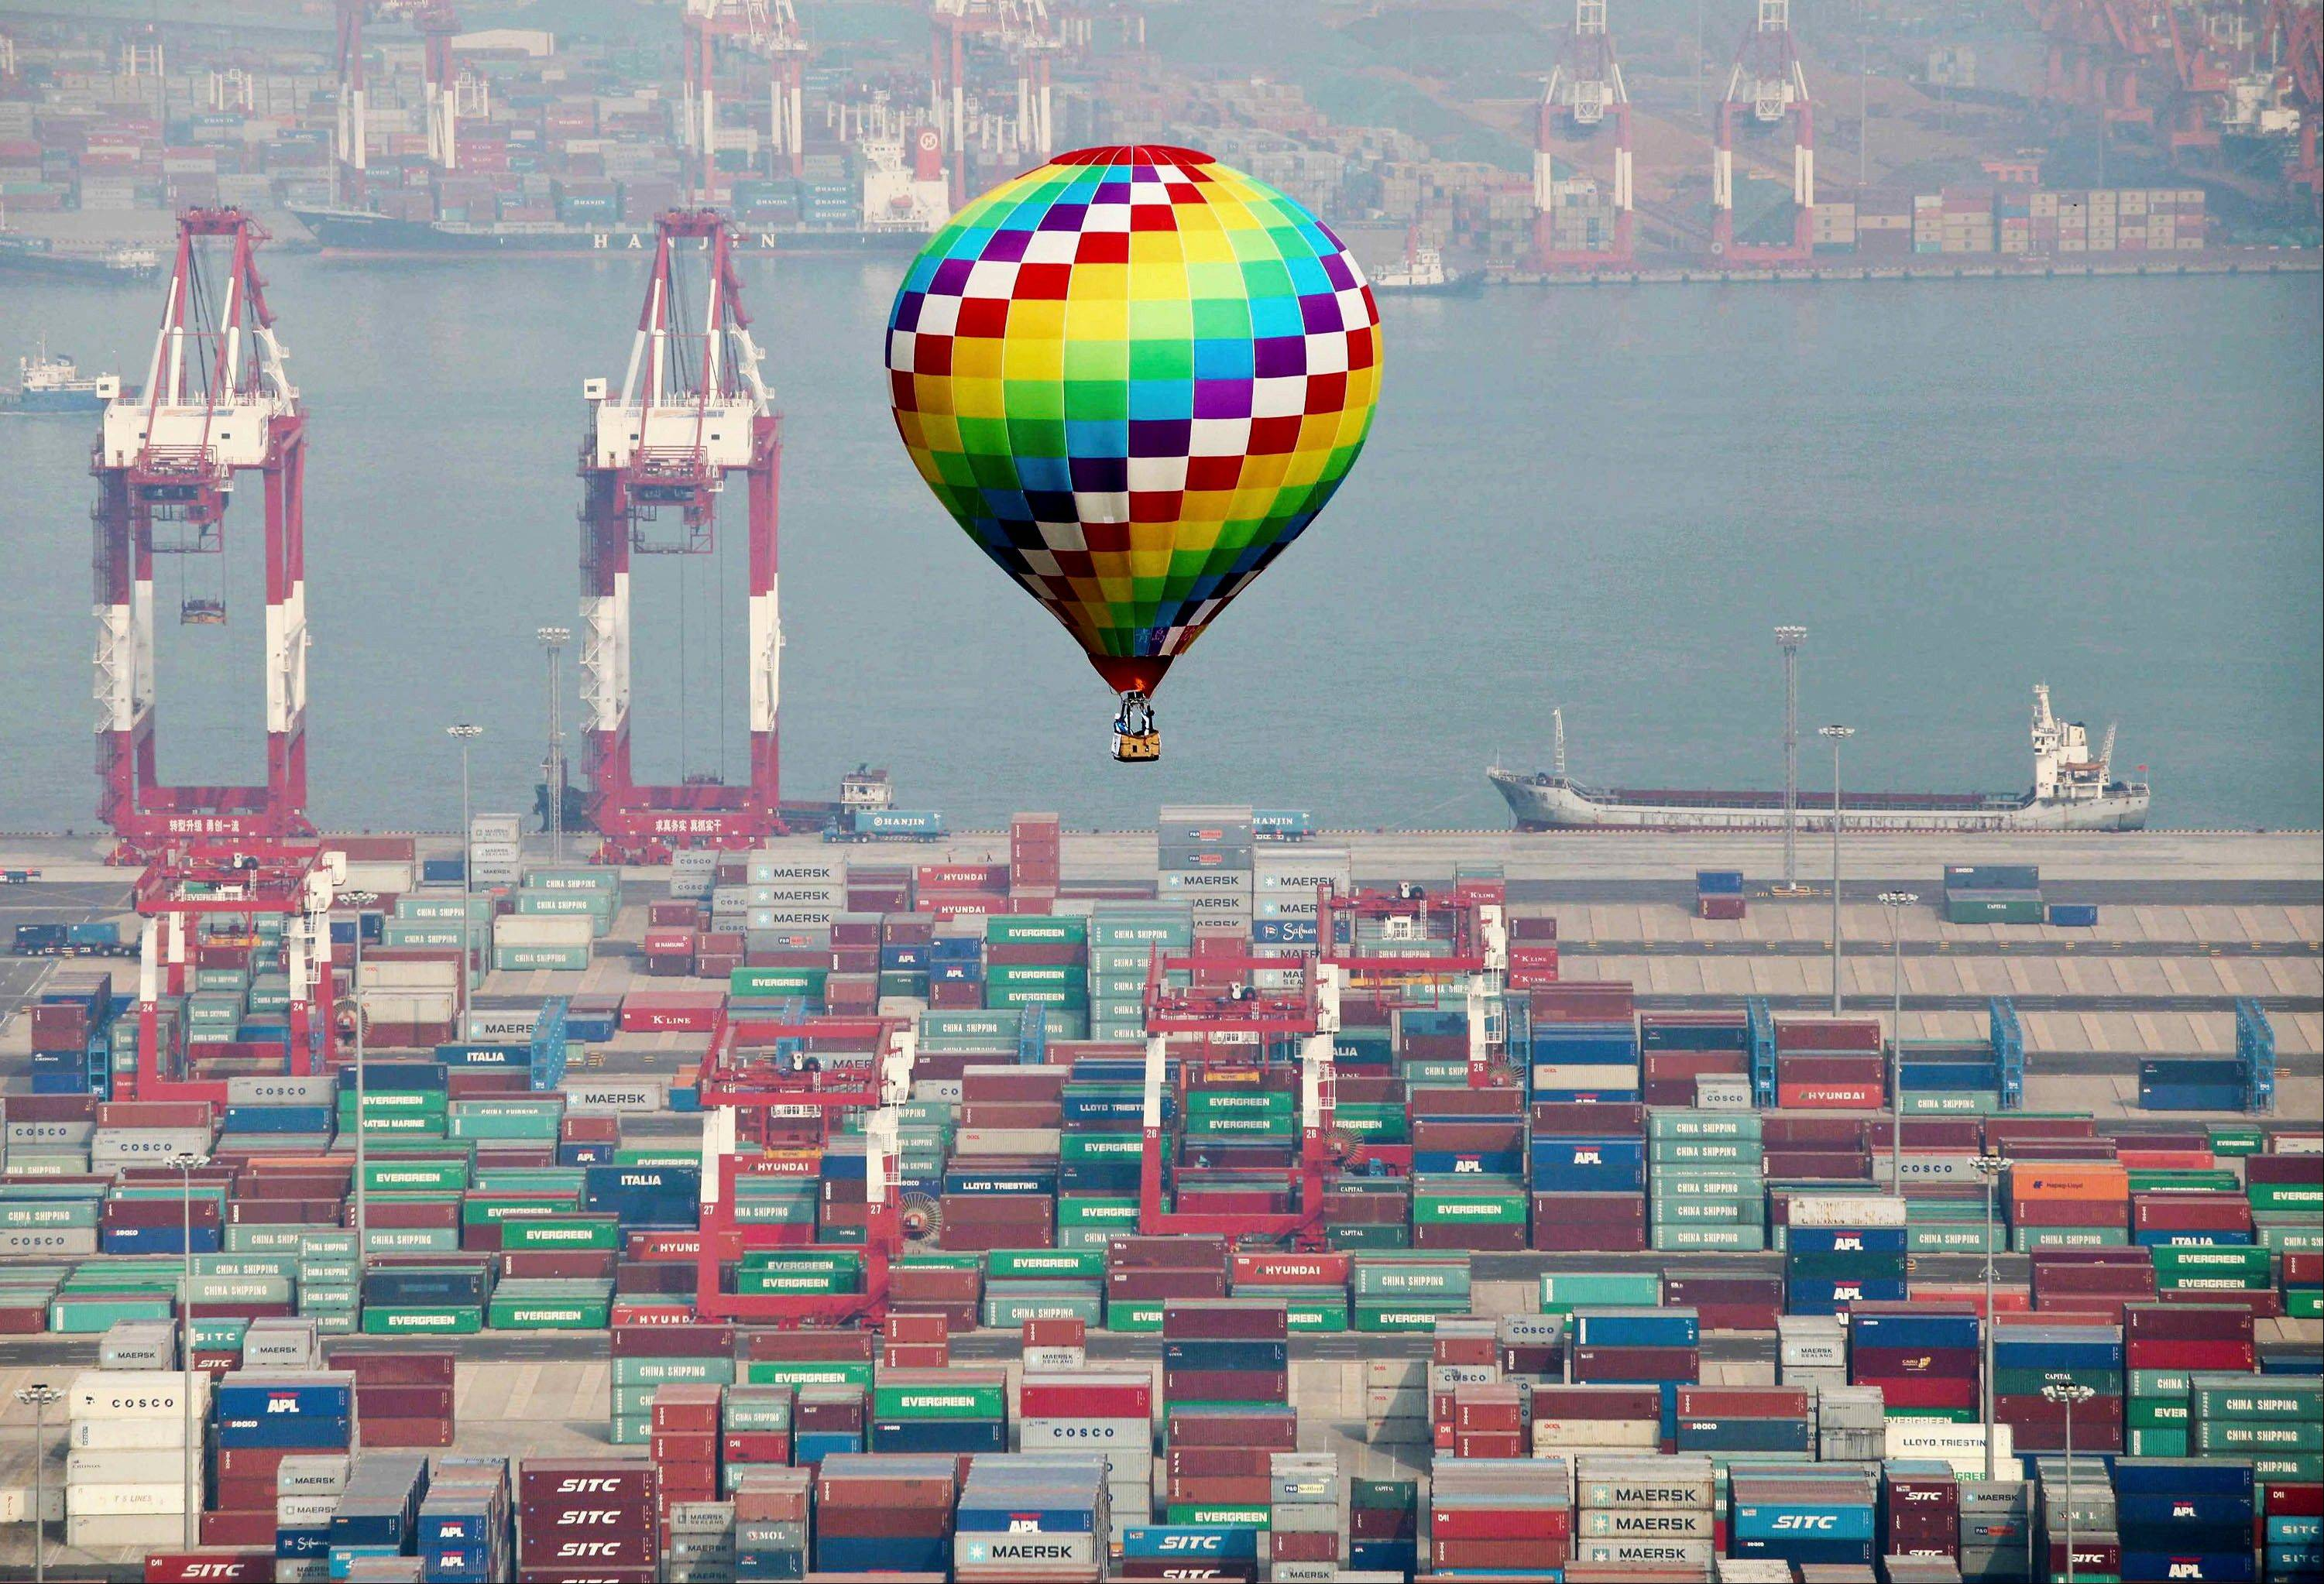 A hot-air balloon flies over a container port in Qingdao in east China's Shandong province Sunday. China's industrial slowdown continues.